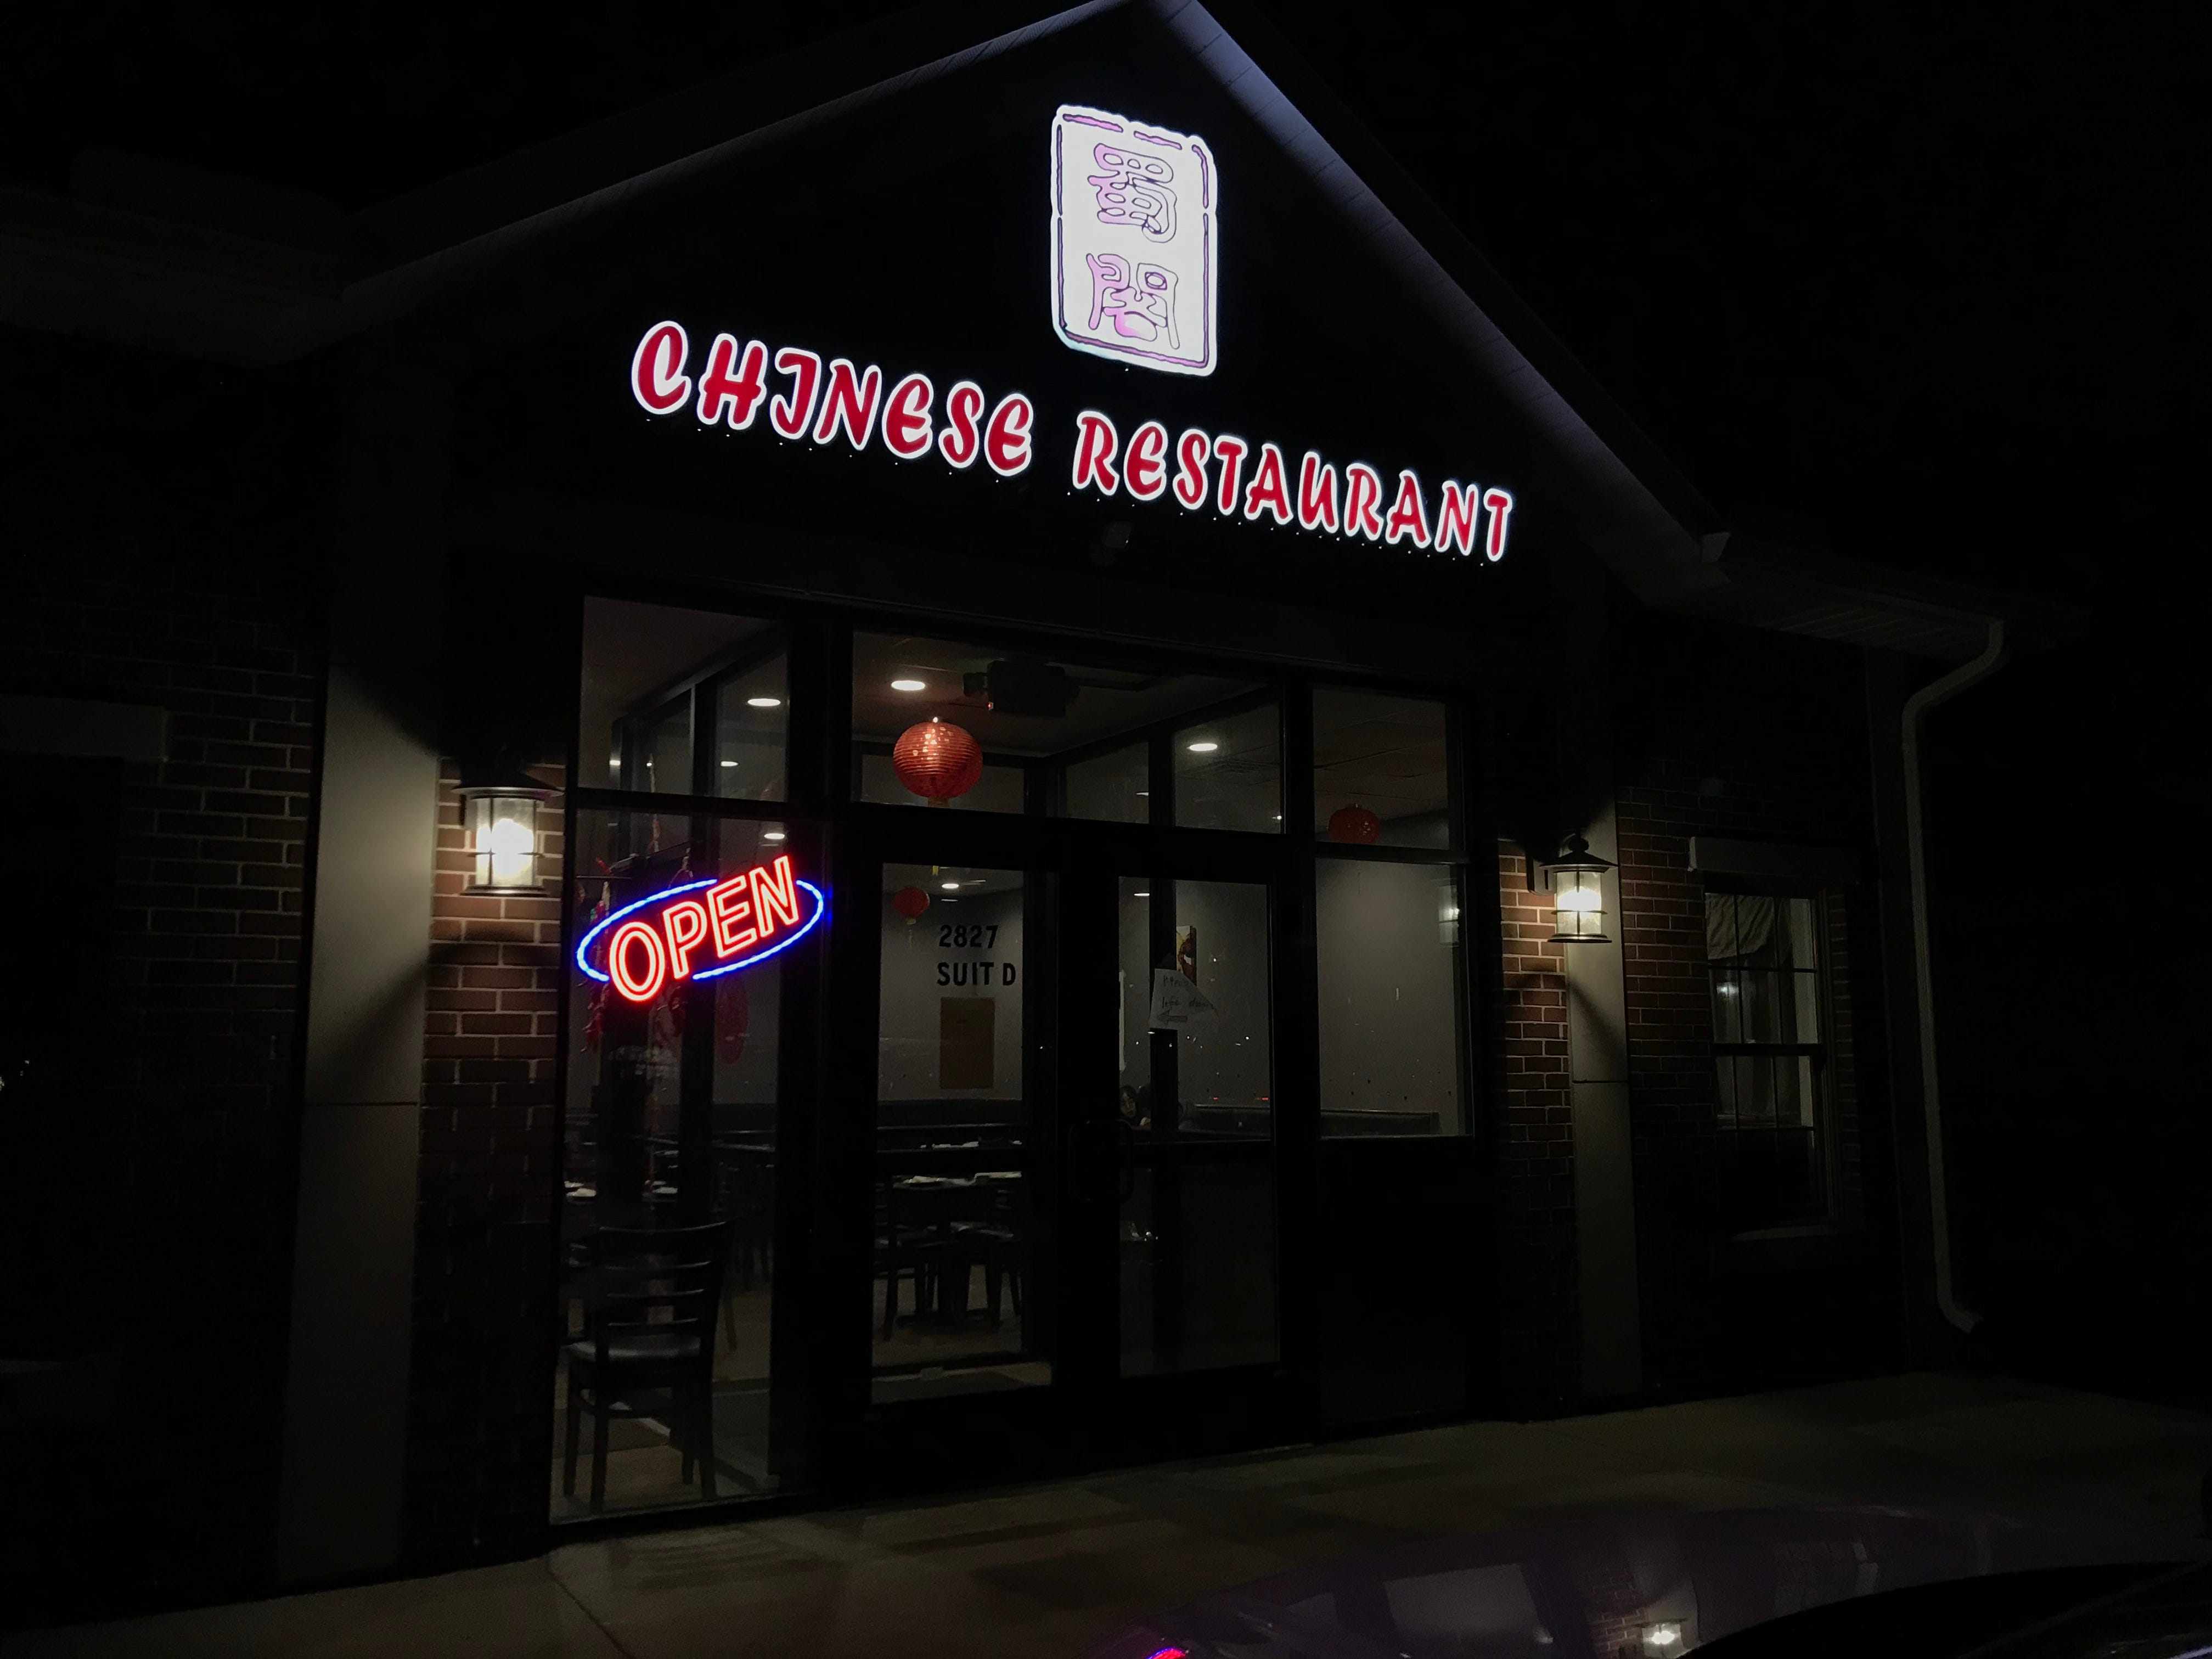 Shu Ge is easily overlooked on the western edge of West Lafayette. The food was good, but the menu's photographs look nothing like the dinners they serve.